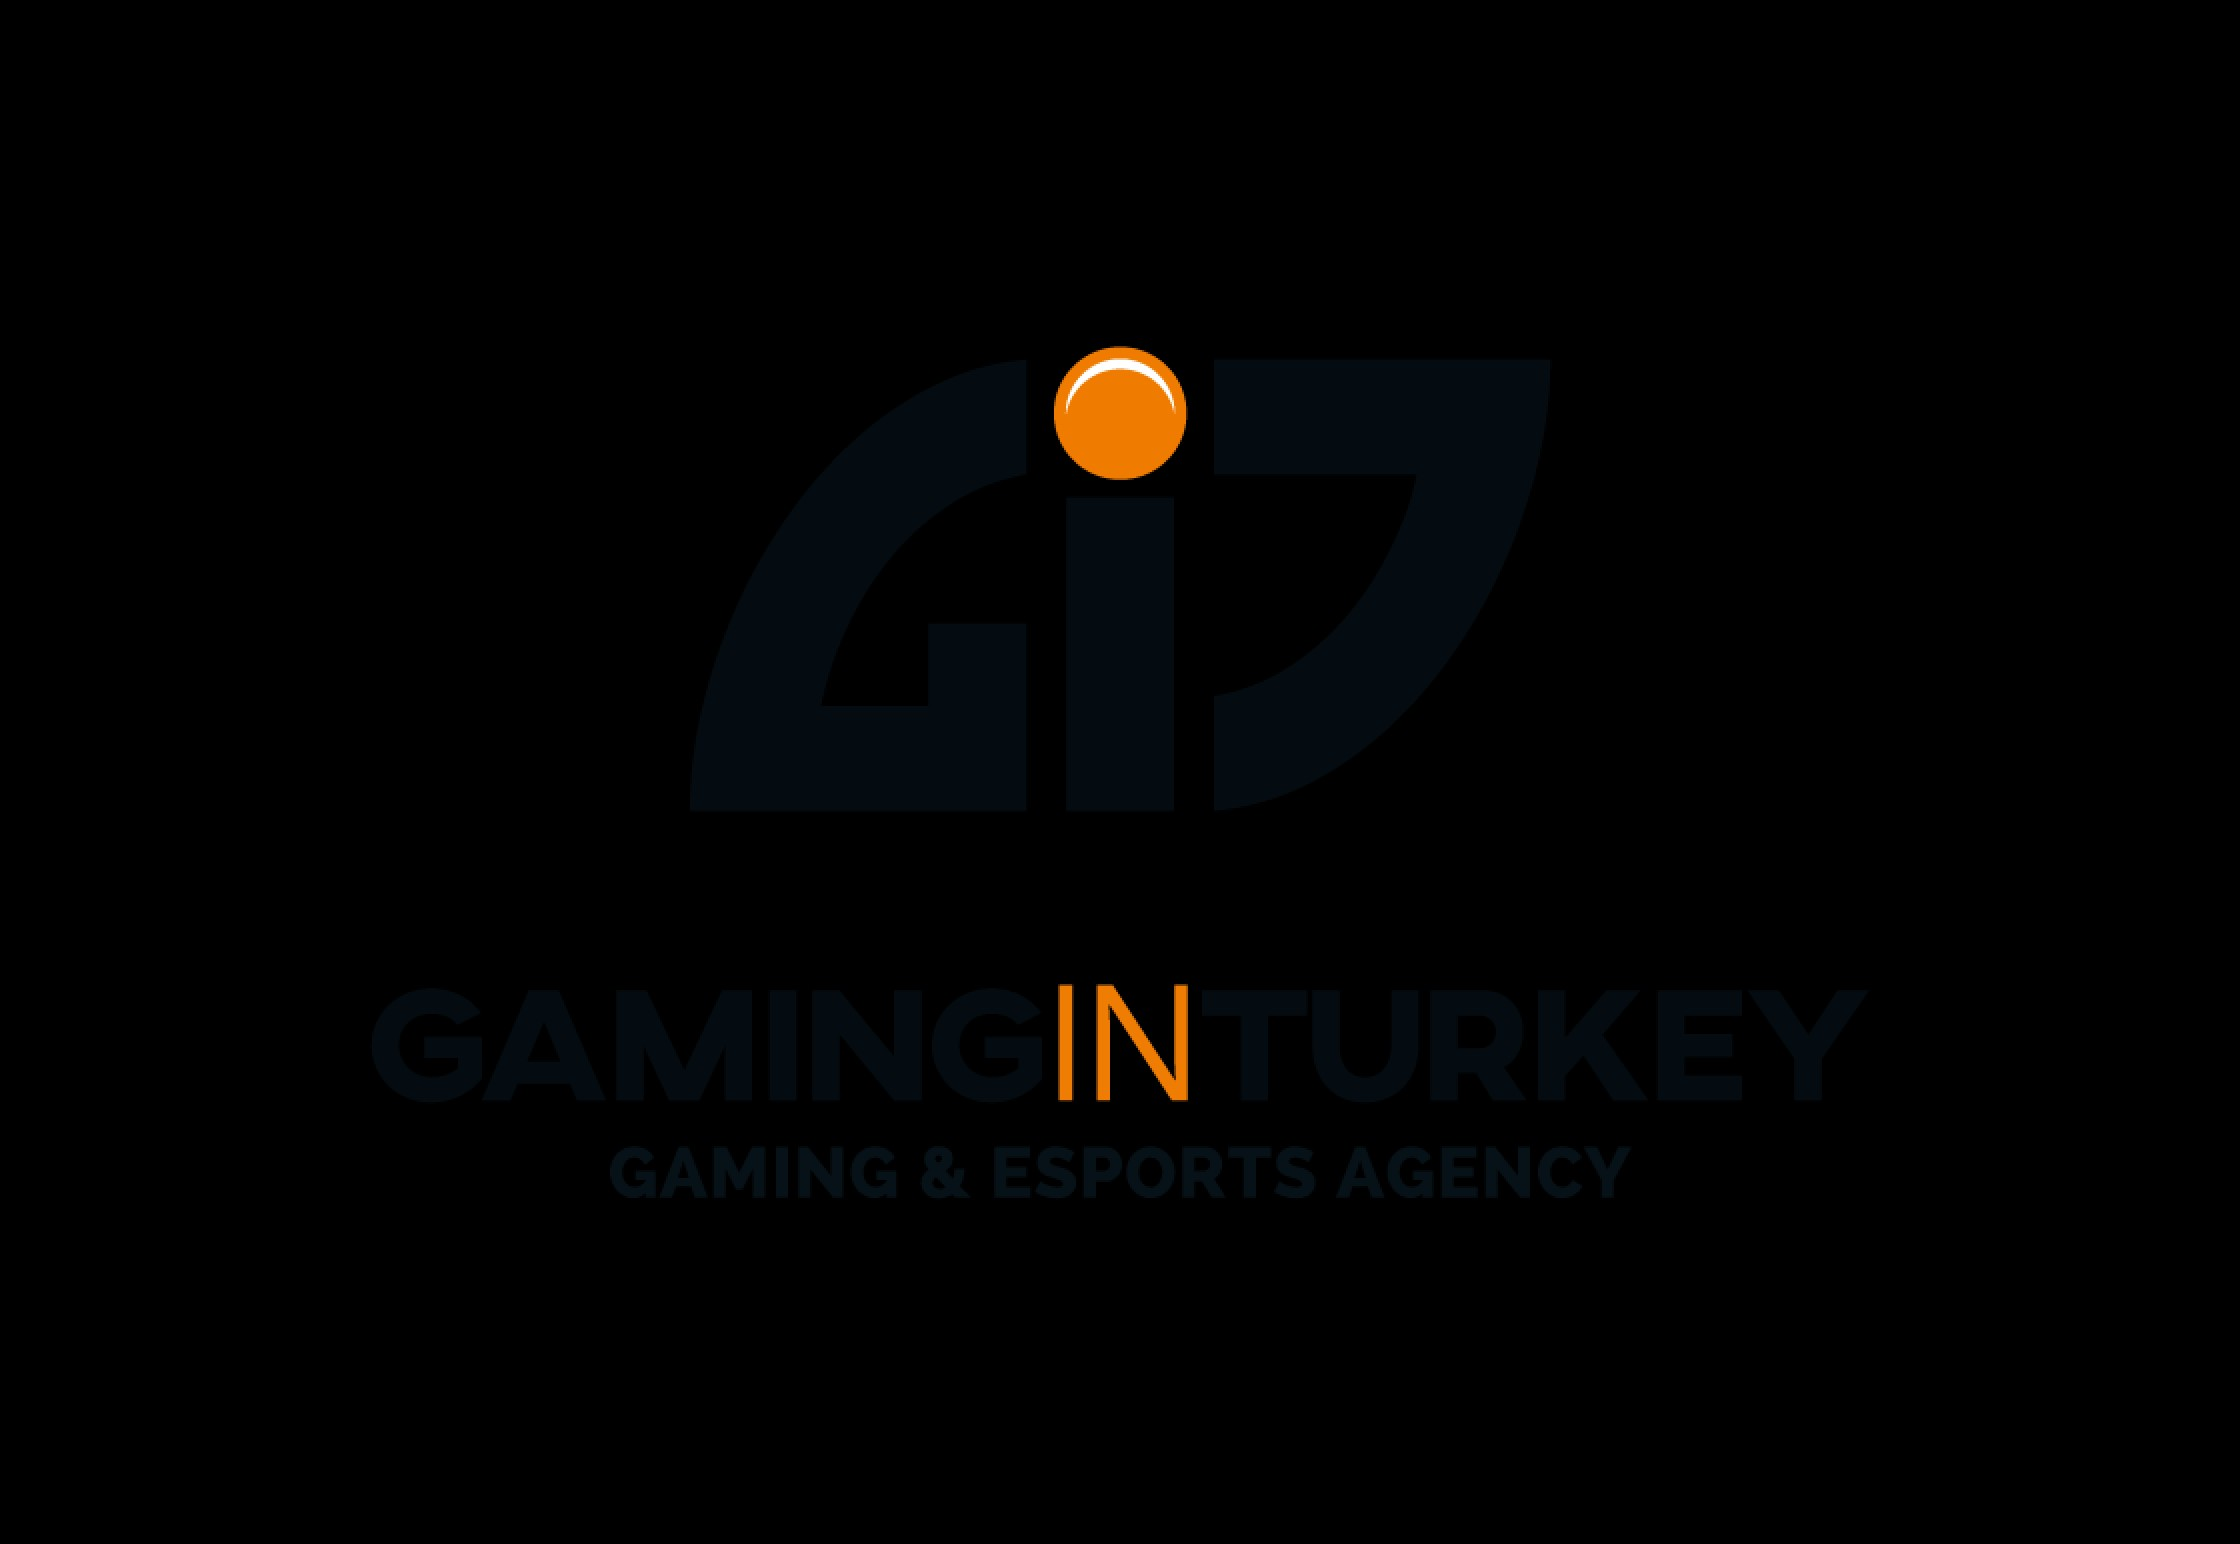 Gaming in Turkey collaborates with FACEIT to Launch Collegiate Esports League